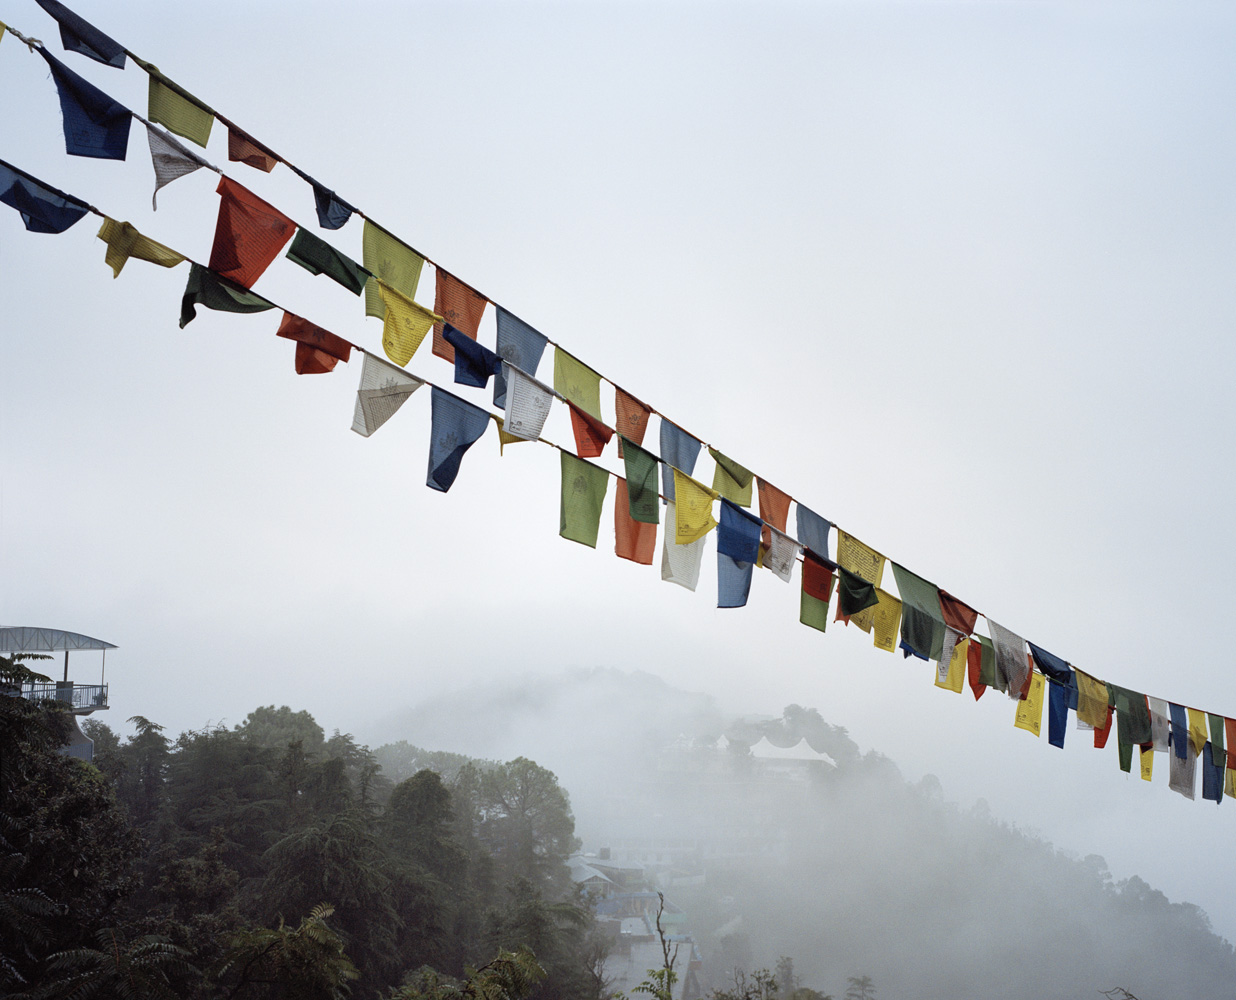 A view of the Namgyal Monastery in upper Dharamsala, near the residence of the Dalai Lama.